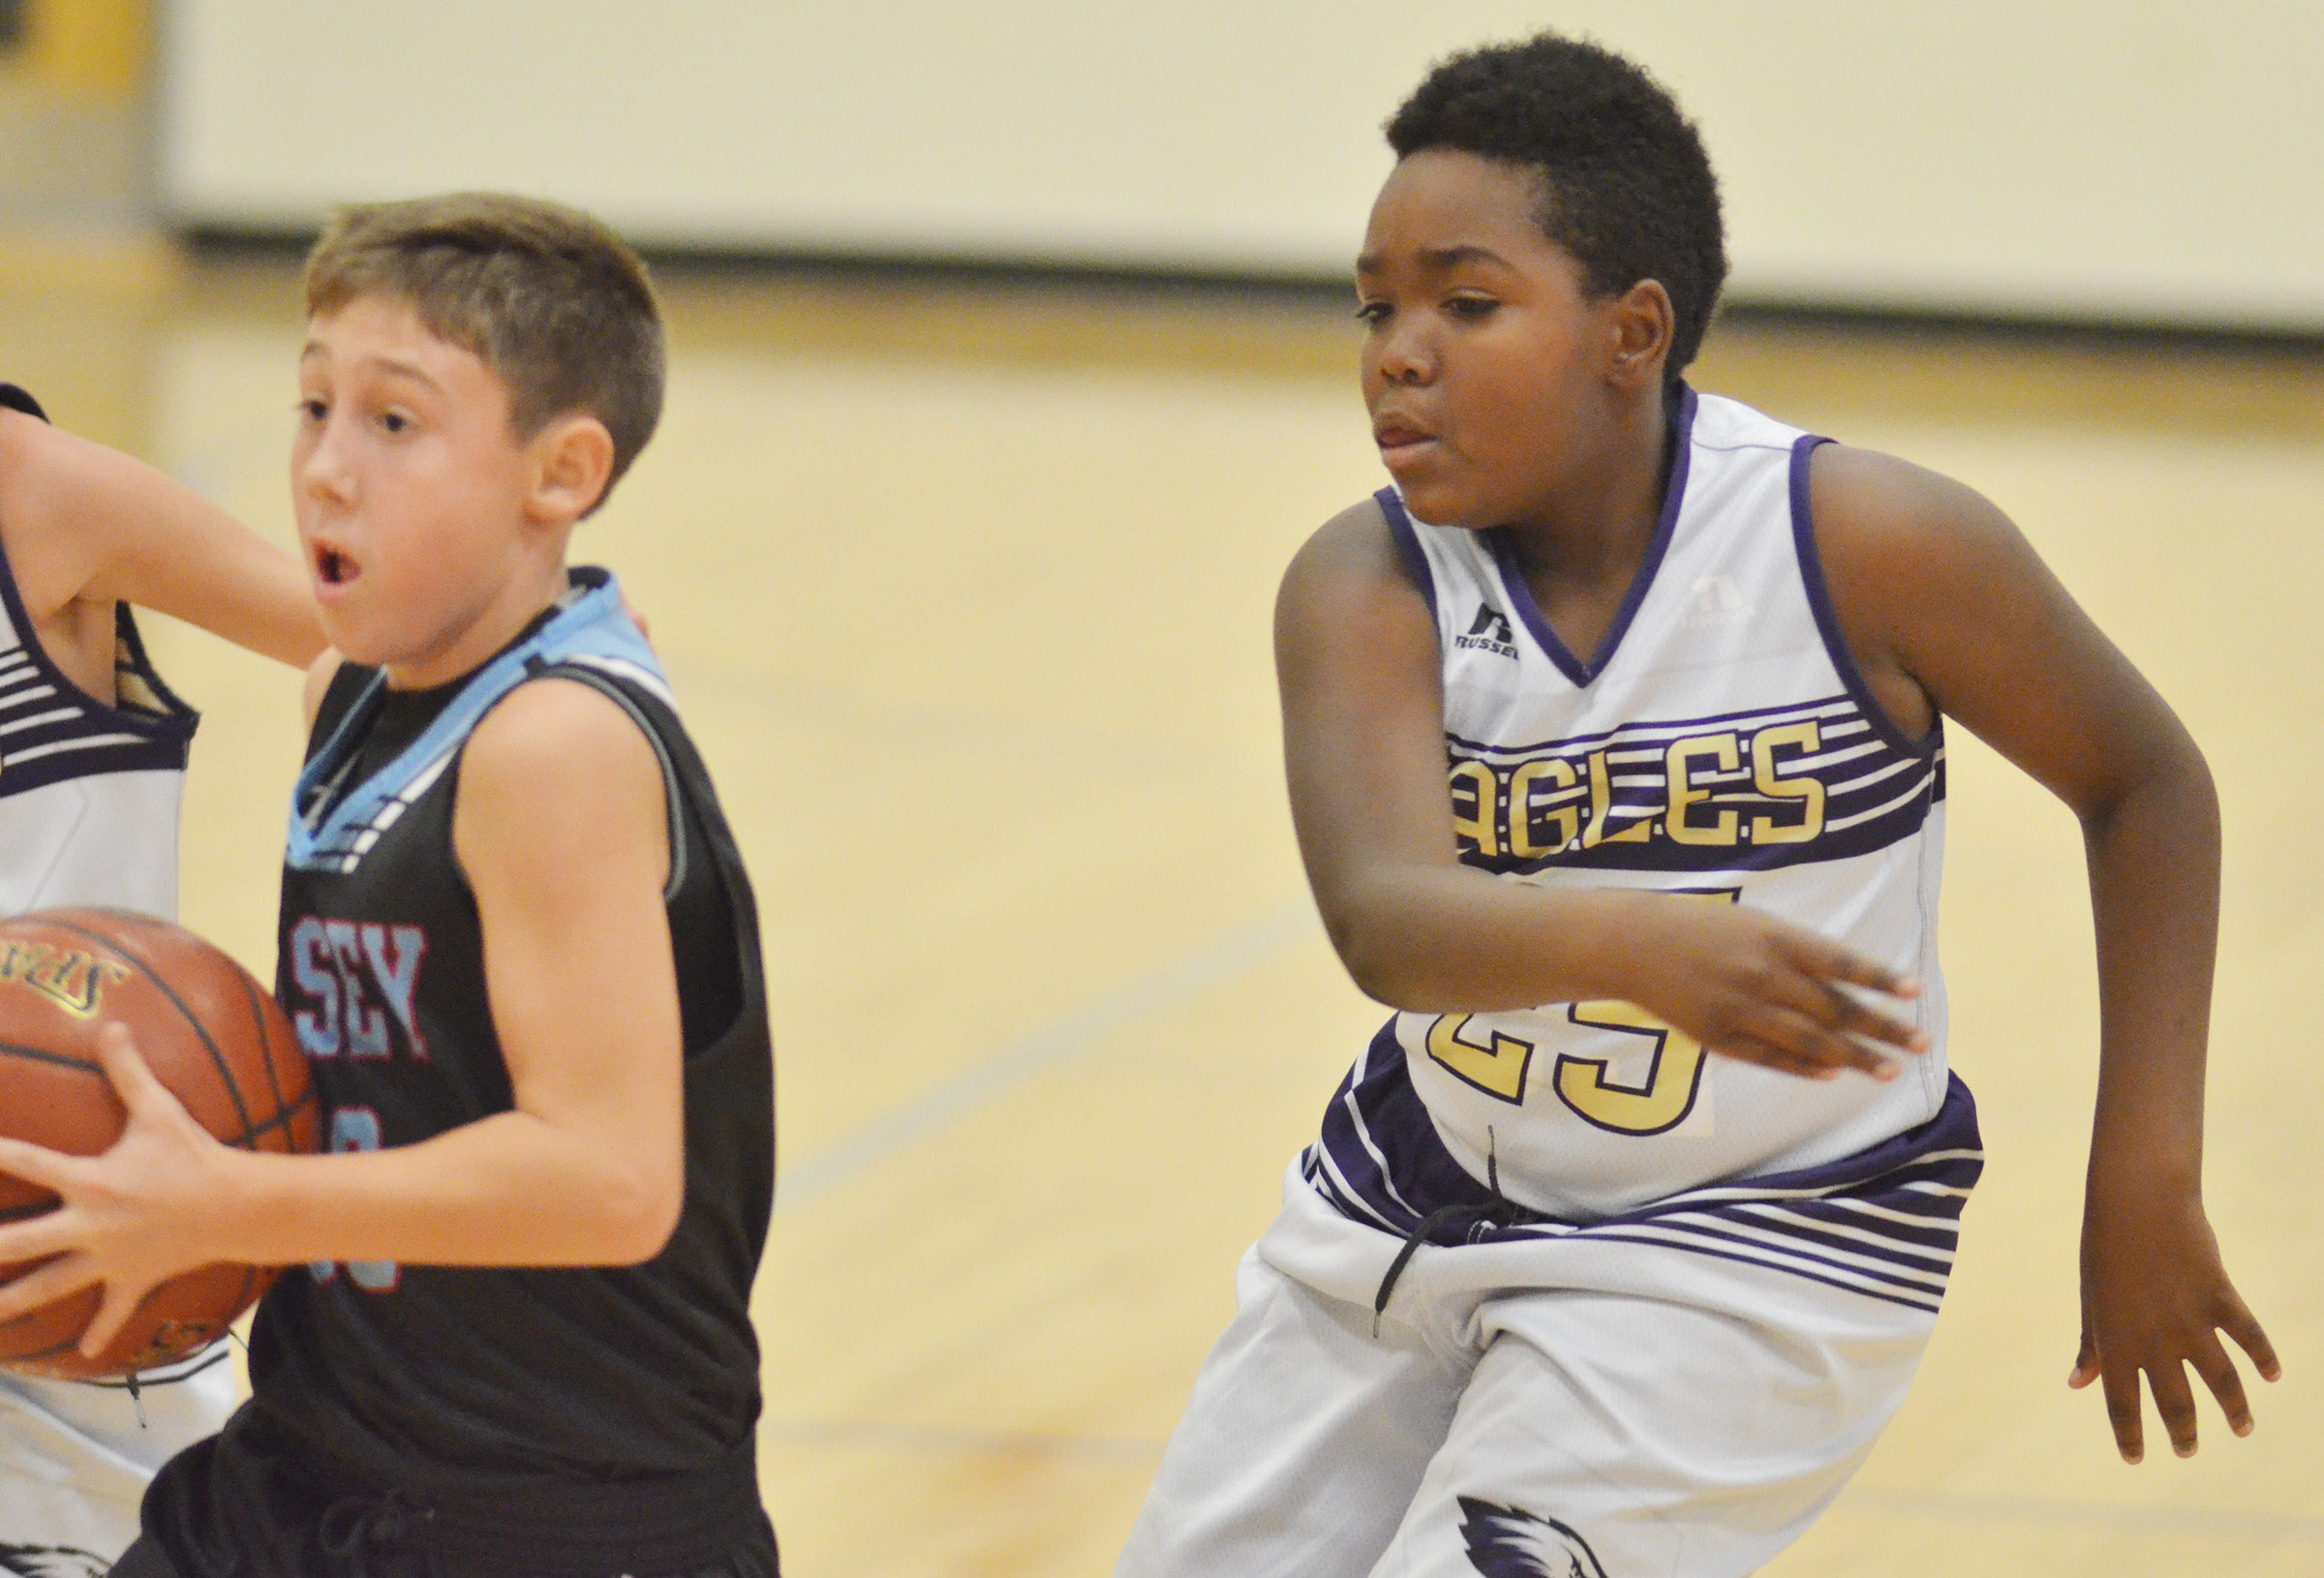 Campbellsville Elementary School fifth-grader KeKe Miller plays defense.